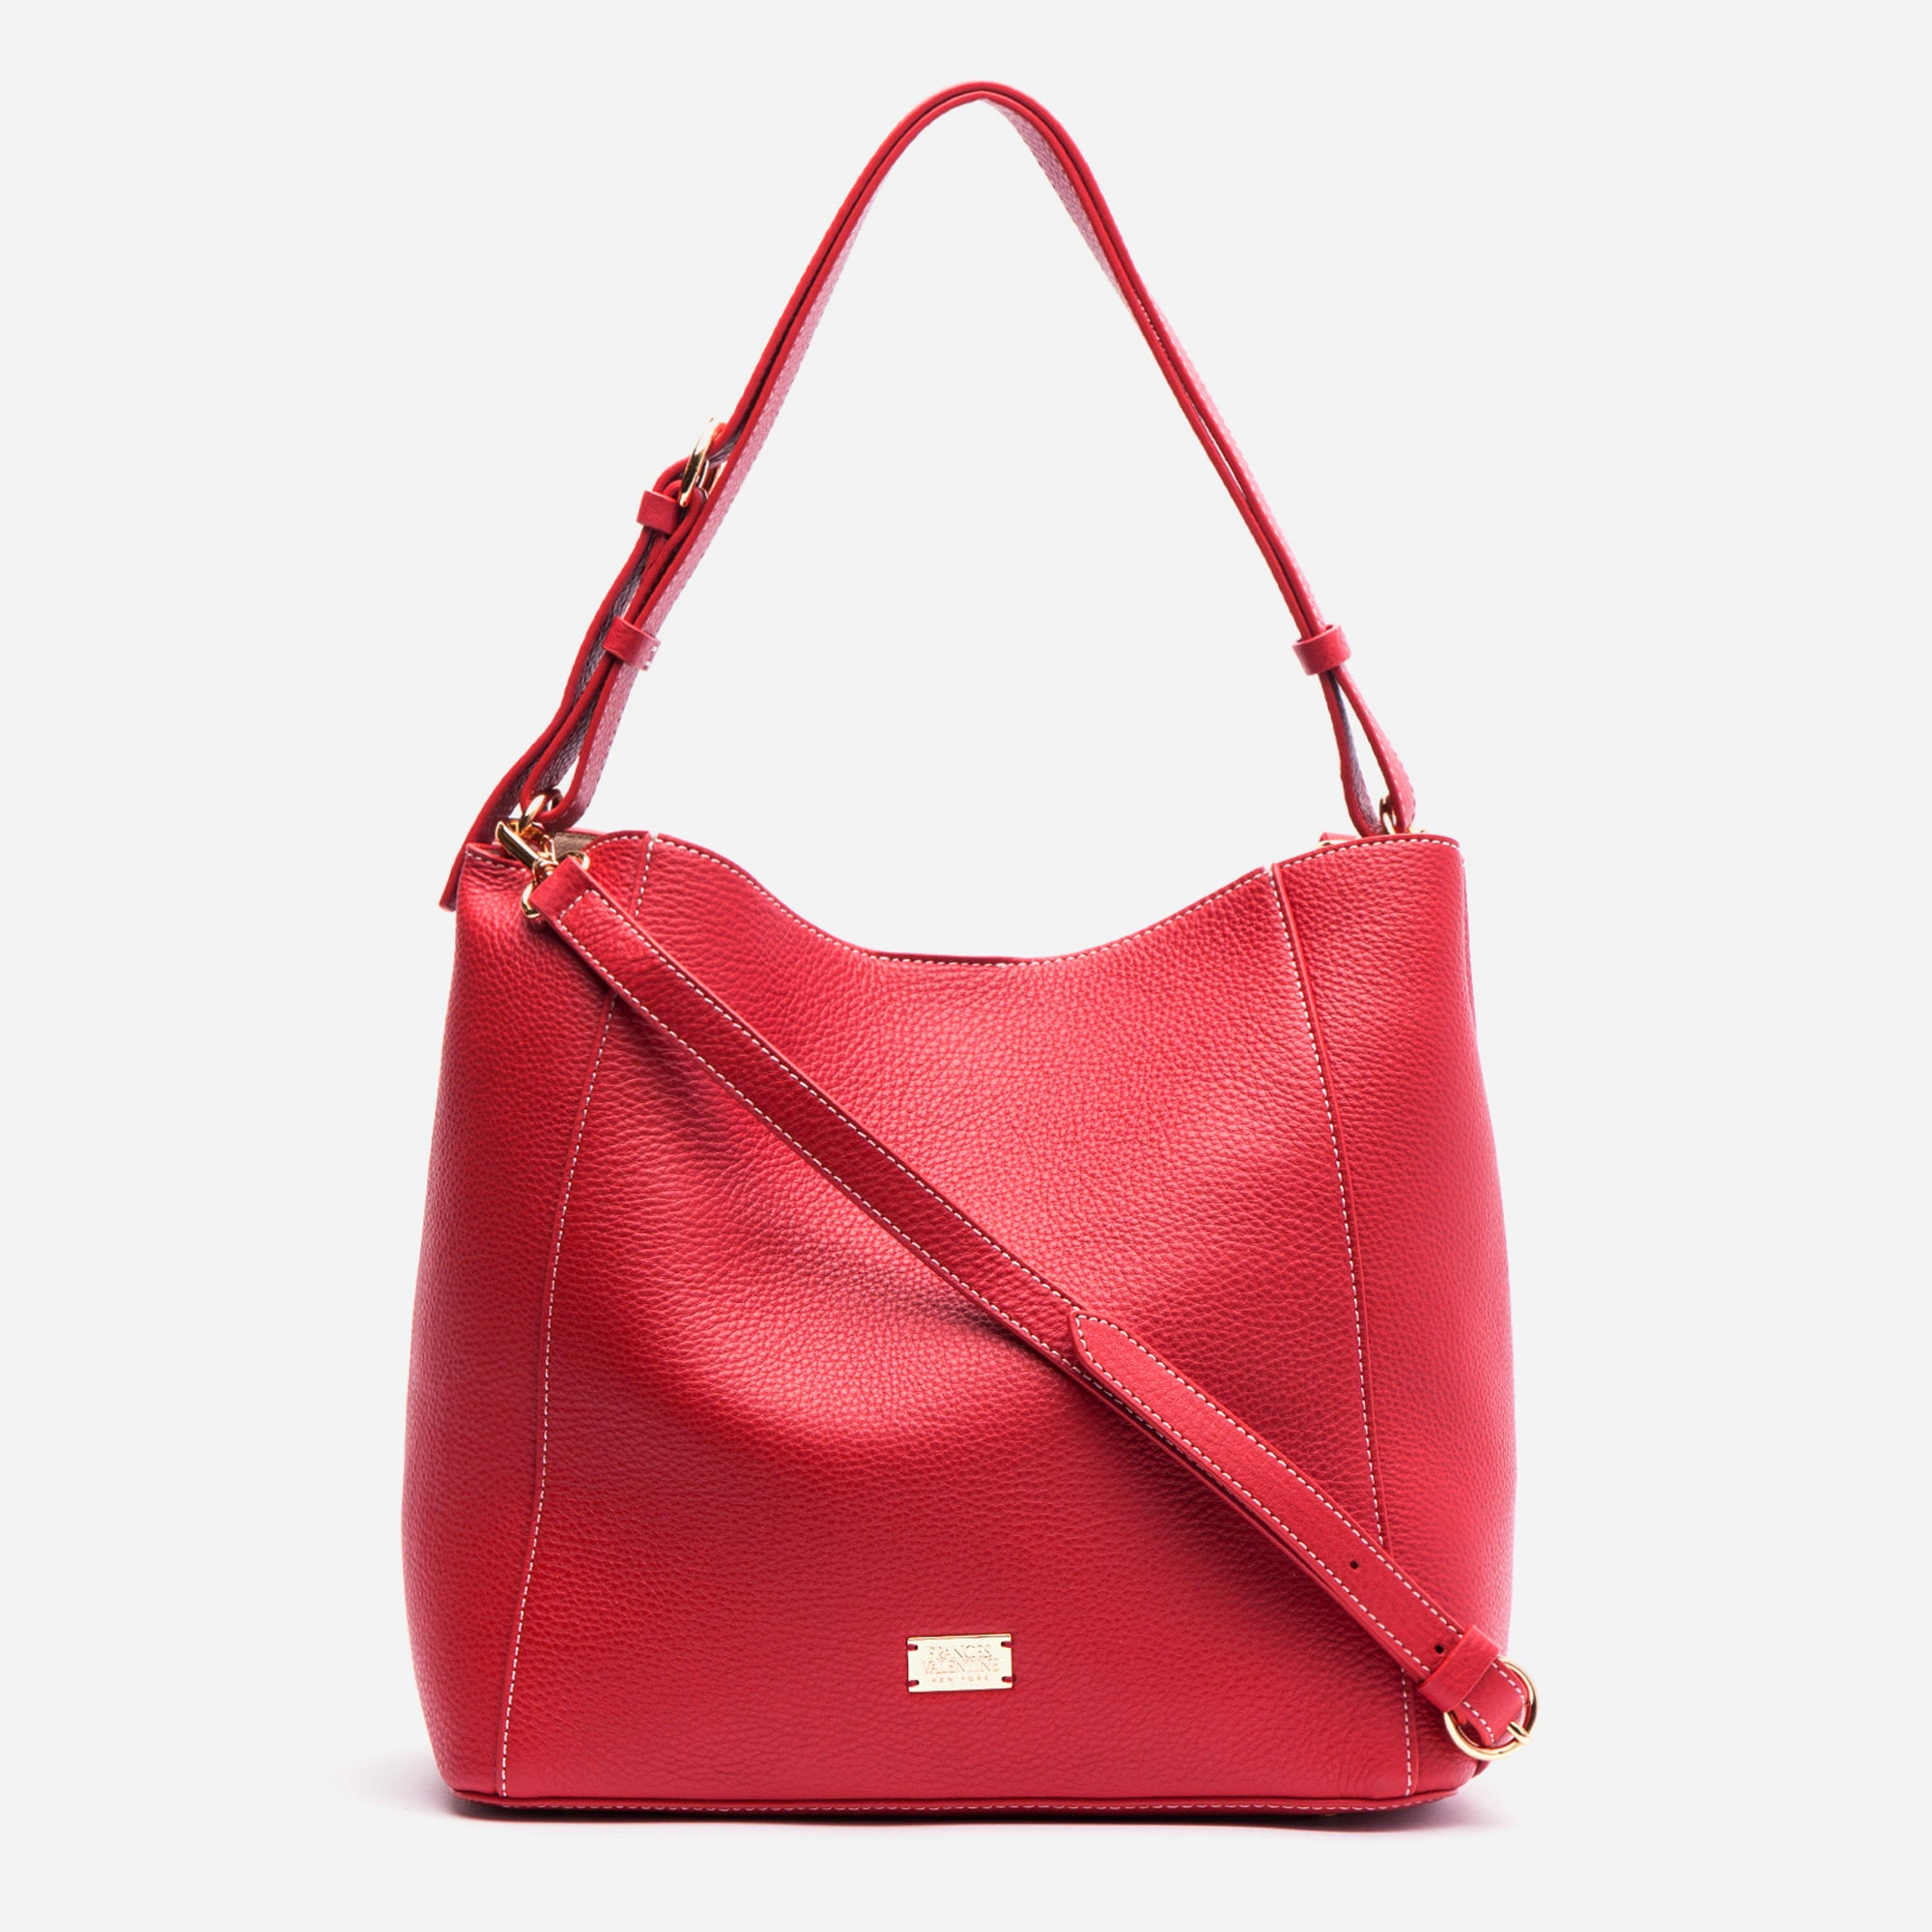 Medium June Hobo Leather Red - Frances Valentine